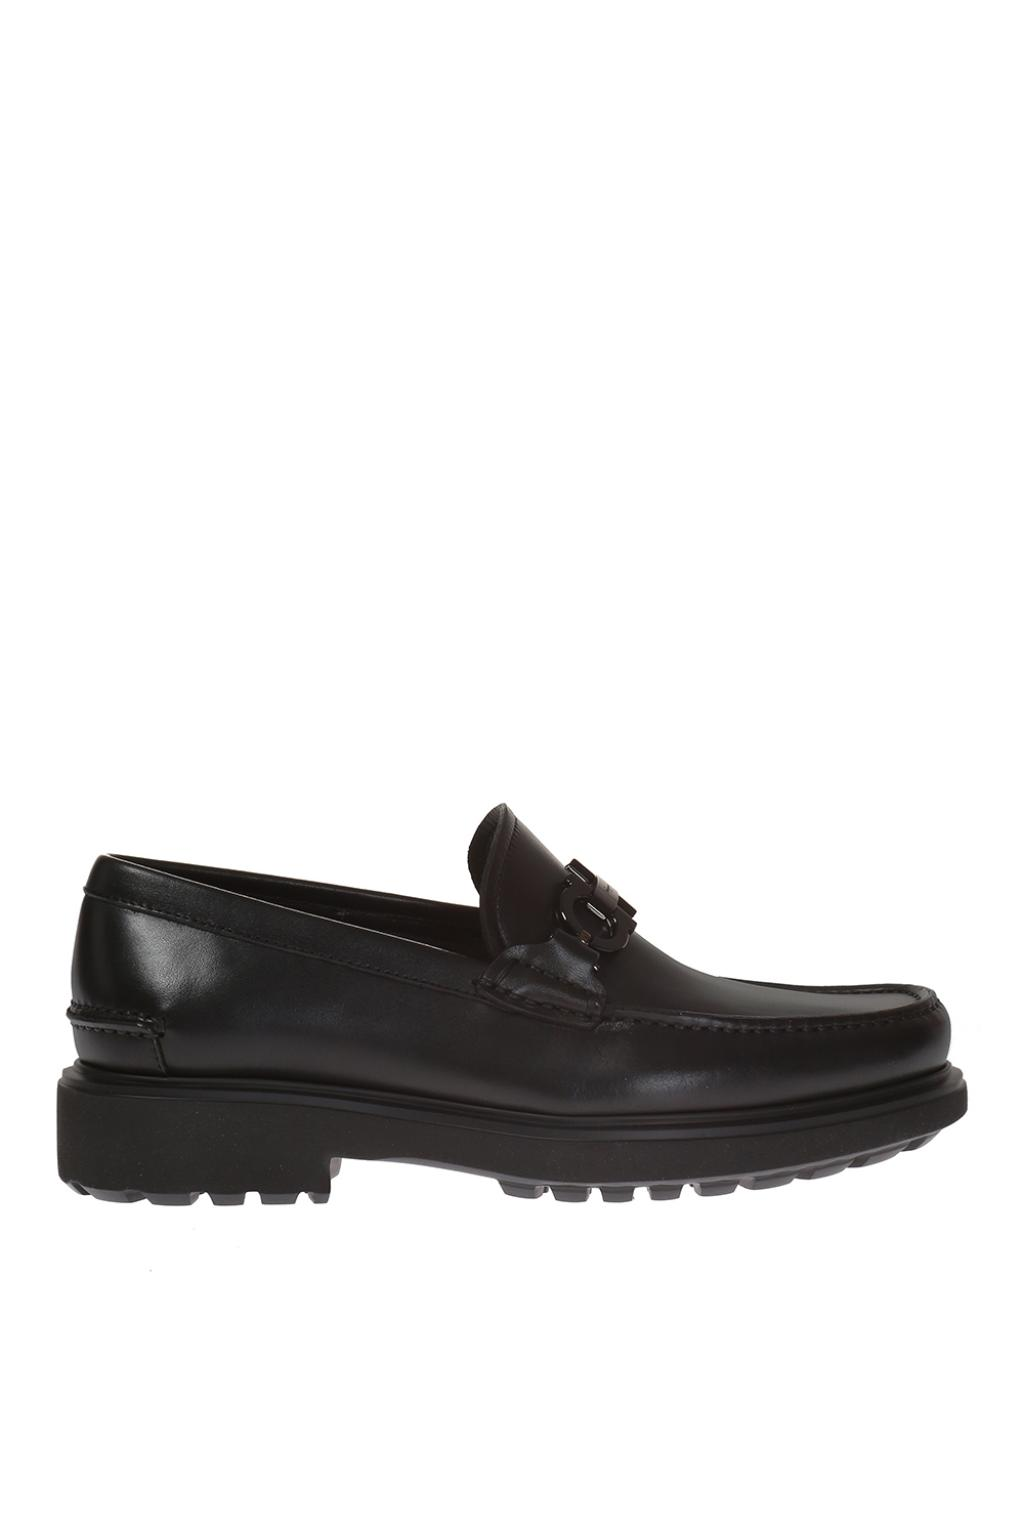 Salvatore Ferragamo 'Gotham' loafers